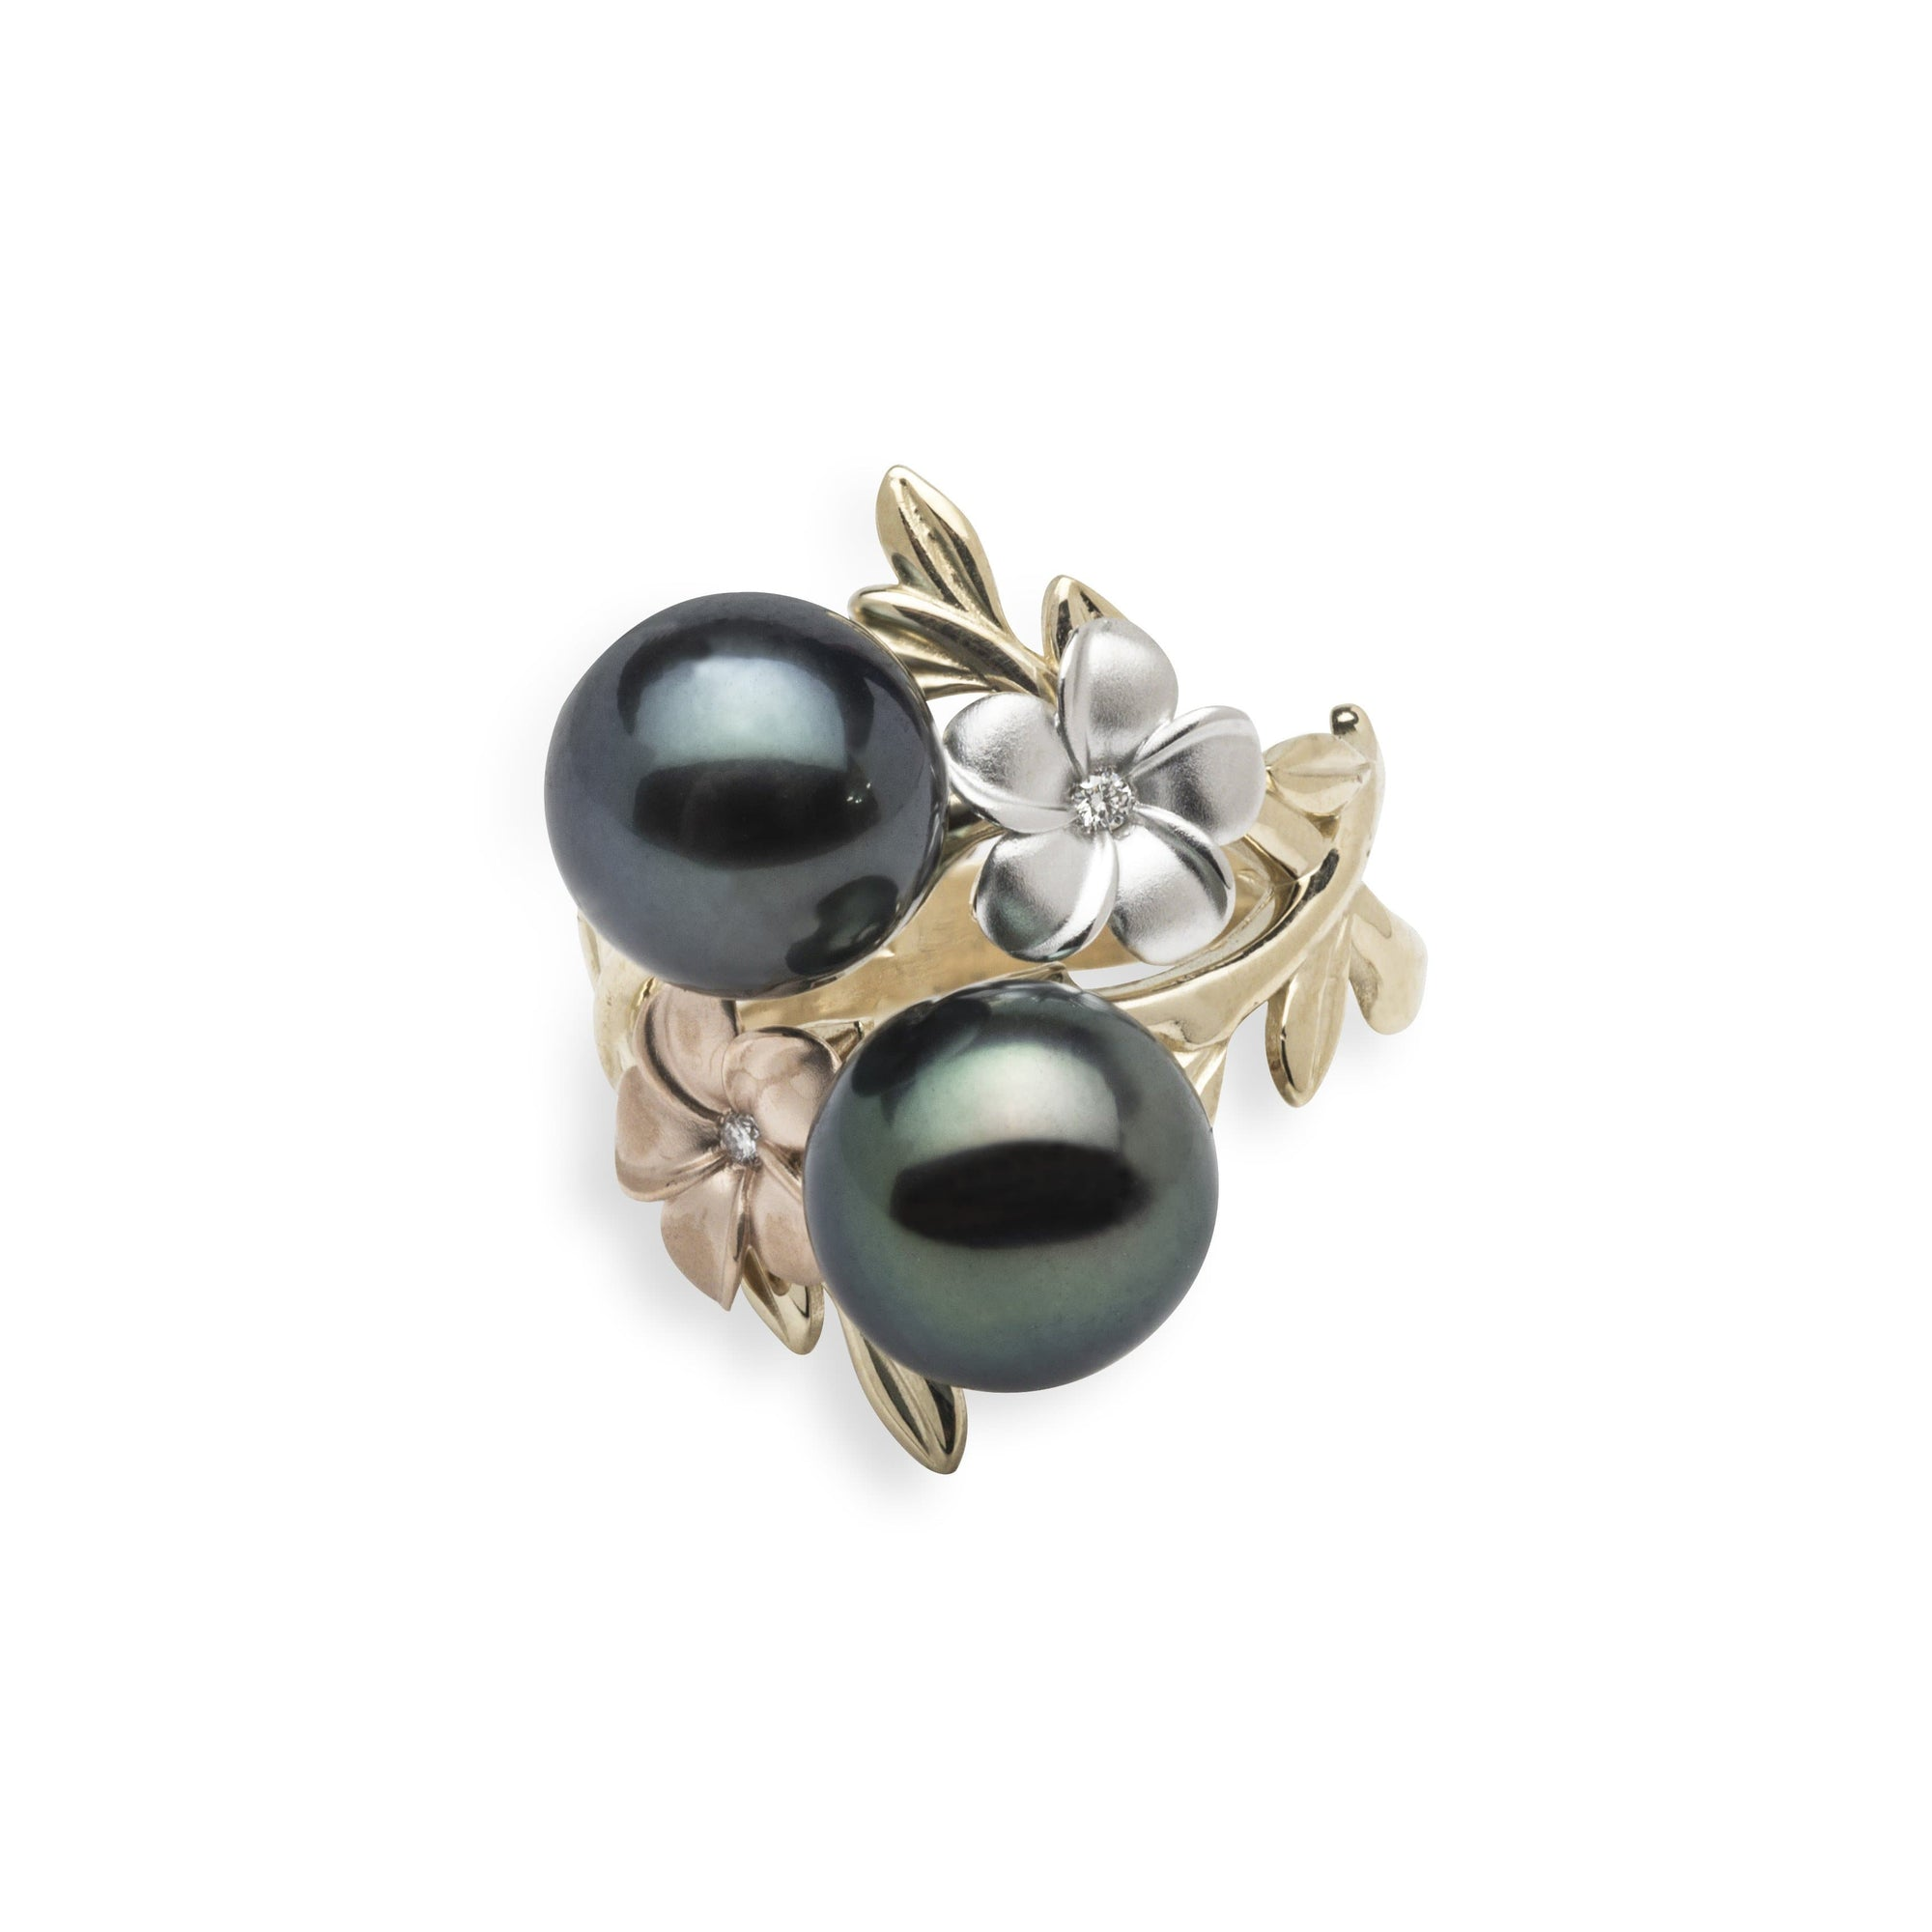 Pearls in Bloom Tahitian Black Pearl Ring in Tri Color Gold with Diamonds - 006-15402 Side